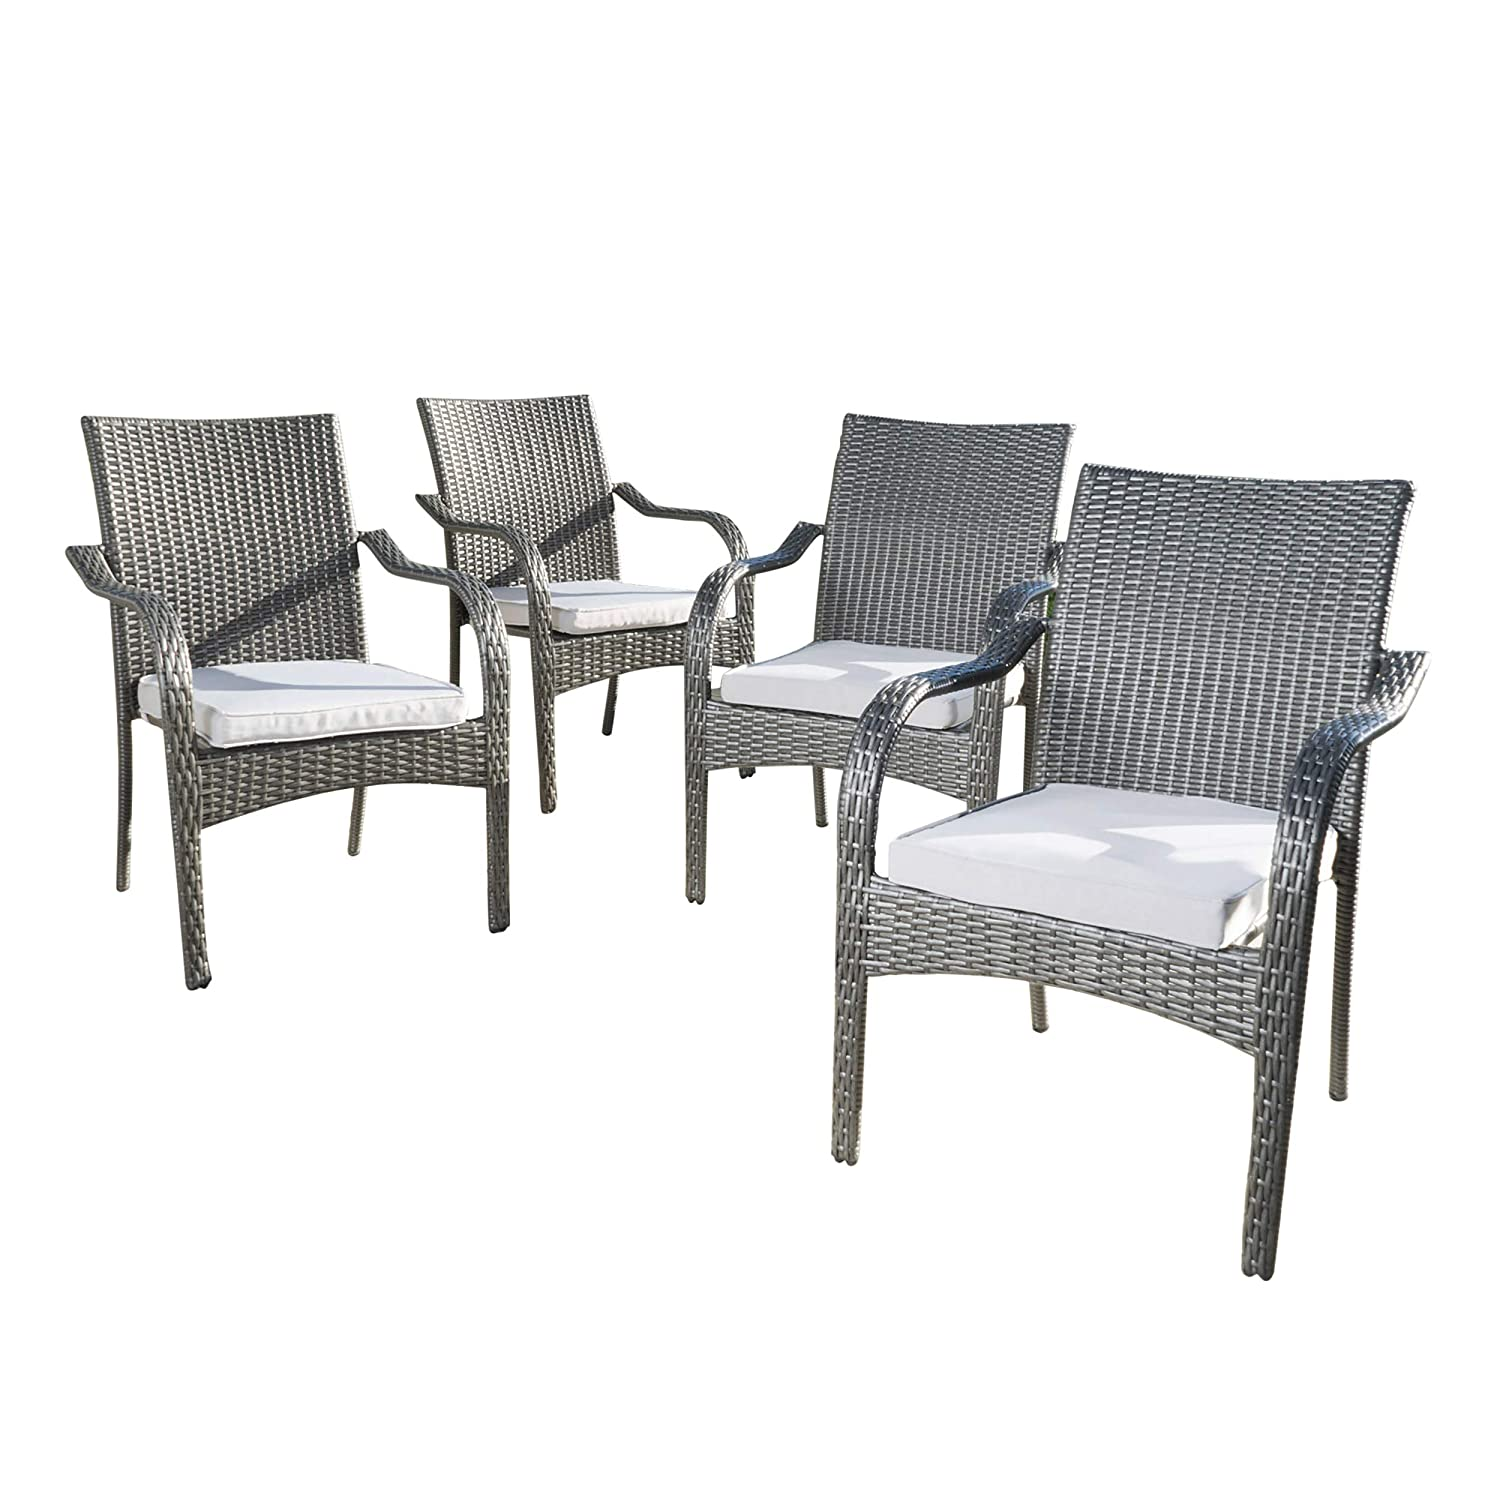 Amazon com gdf studio san miguel wicker stacking outdoor dining chairs set of 4 perfect for patio grey garden outdoor